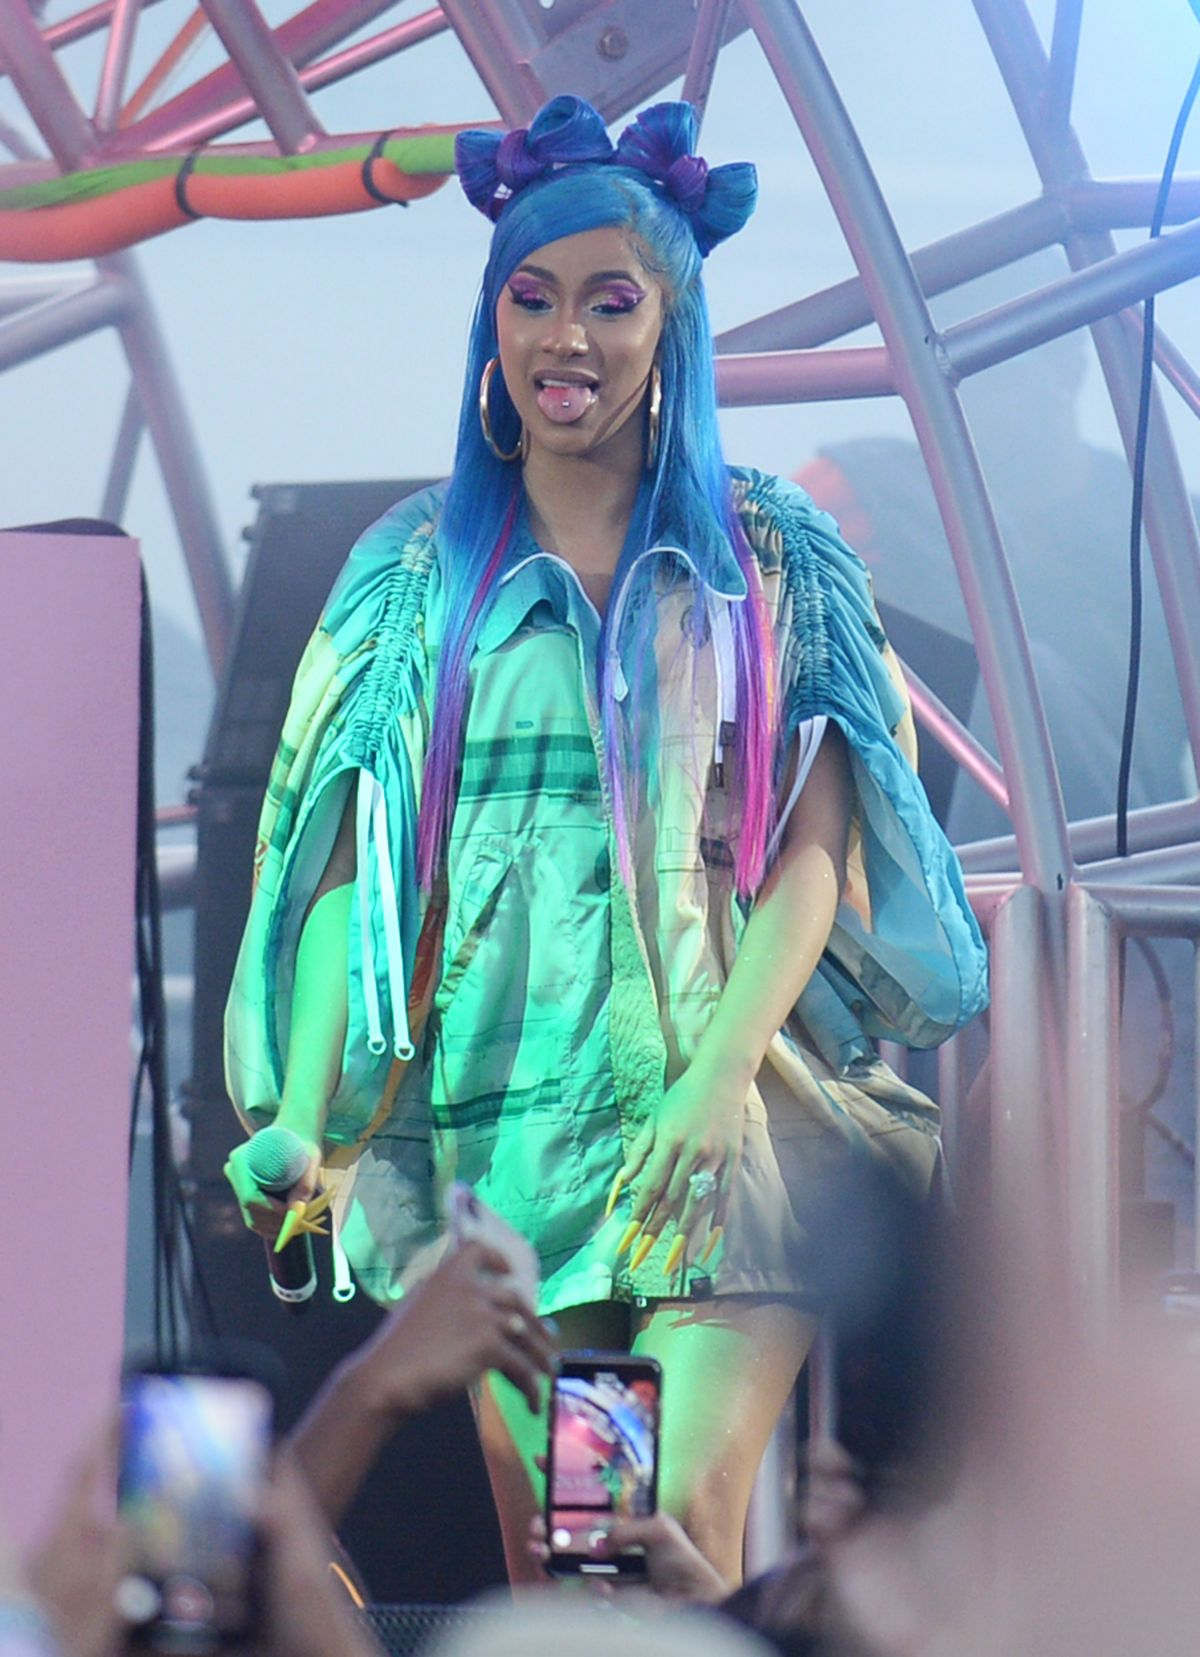 Cardi B Coachella: CARDI B At Revolve Party At Coachella Festival 04/14/2019